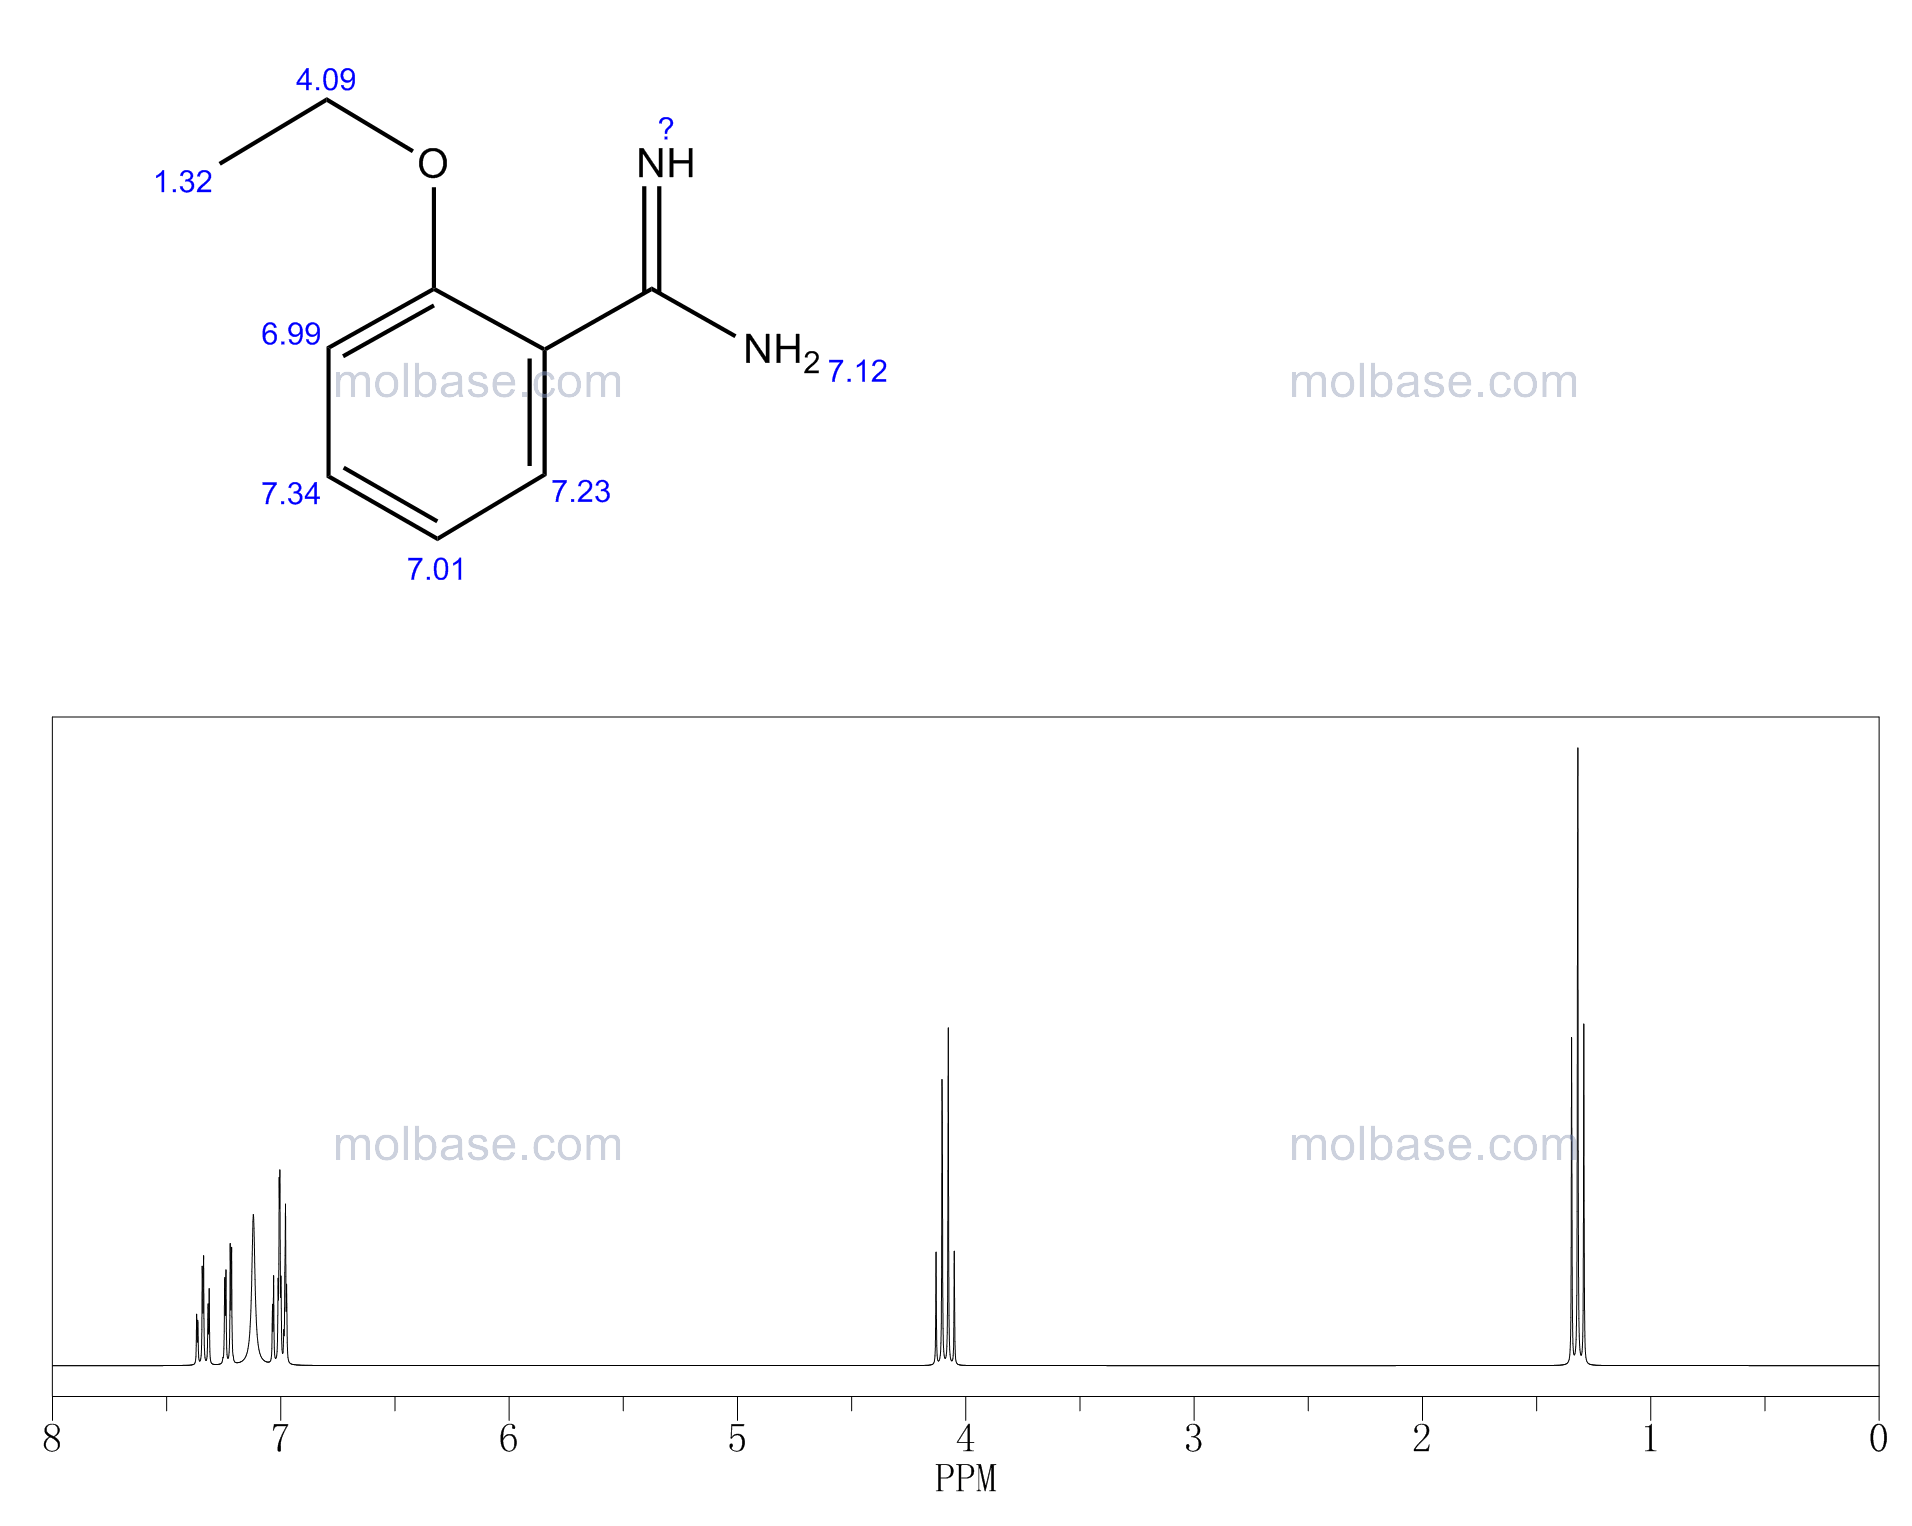 2-ethoxybenzenecarboximidamide NMR spectra analysis, Chemical CAS NO. 53623-81-7 NMR spectral analysis, 2-ethoxybenzenecarboximidamide C-NMR spectrum